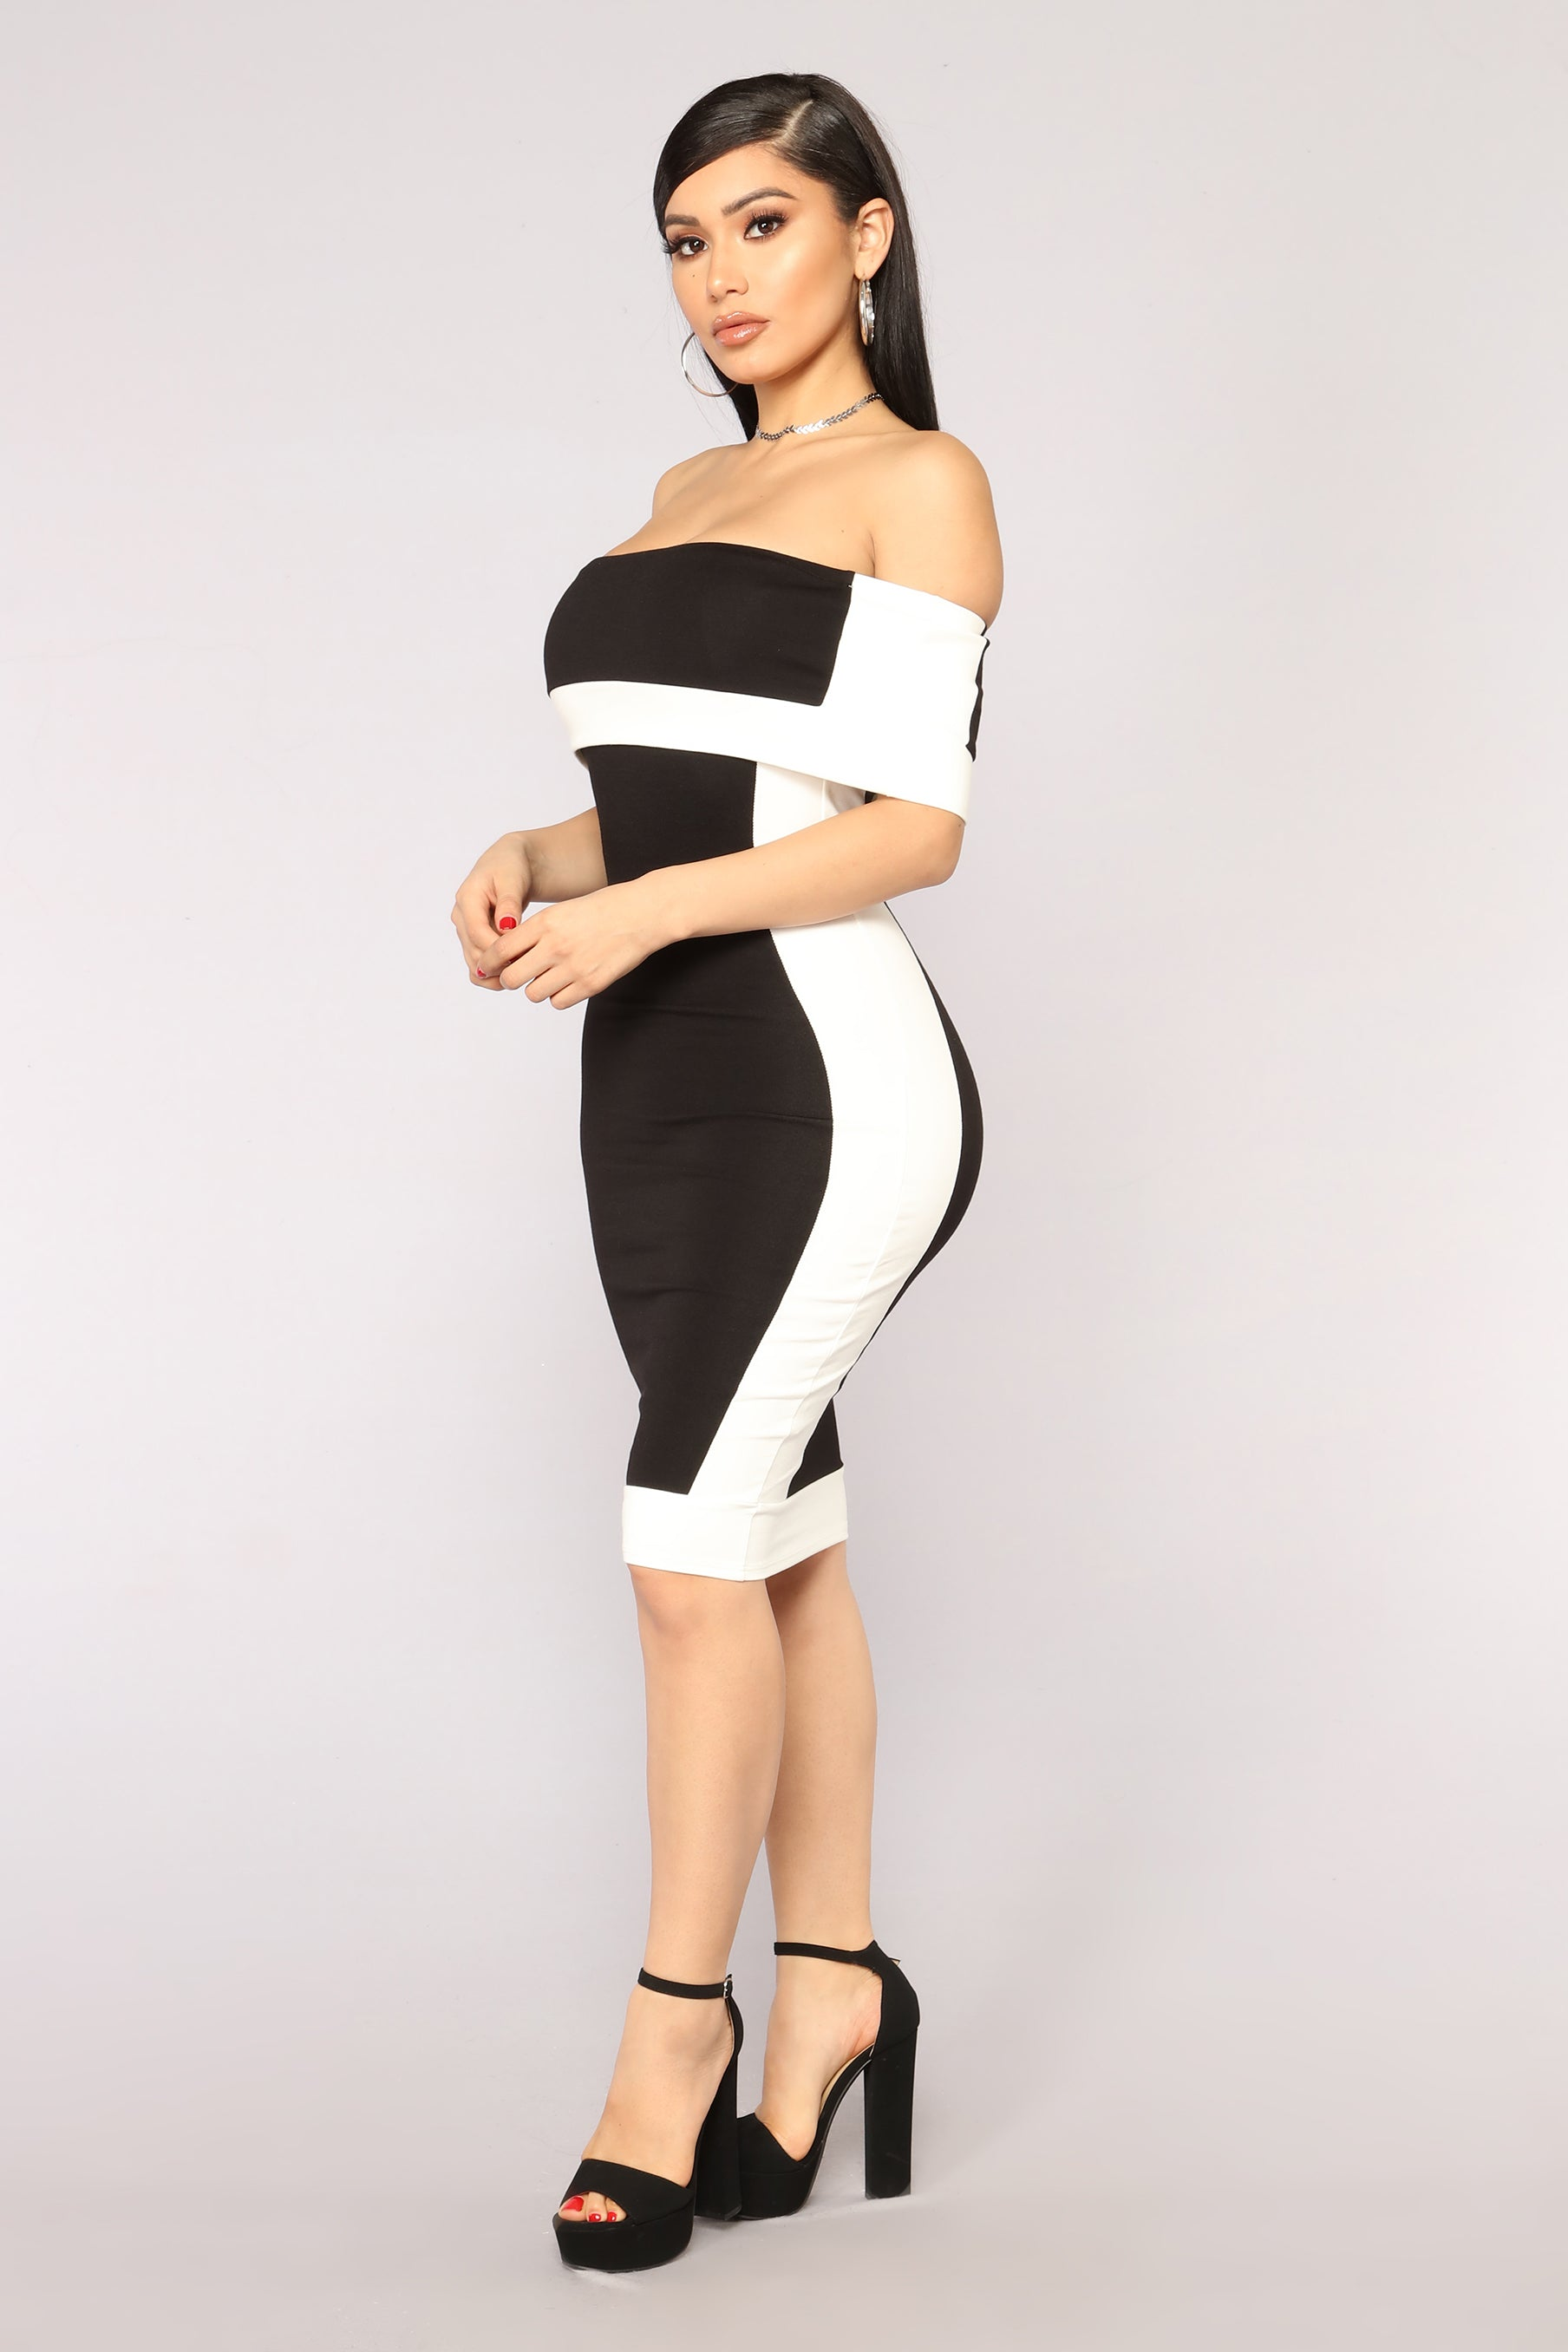 Off the Shoulder Black and White Dresses